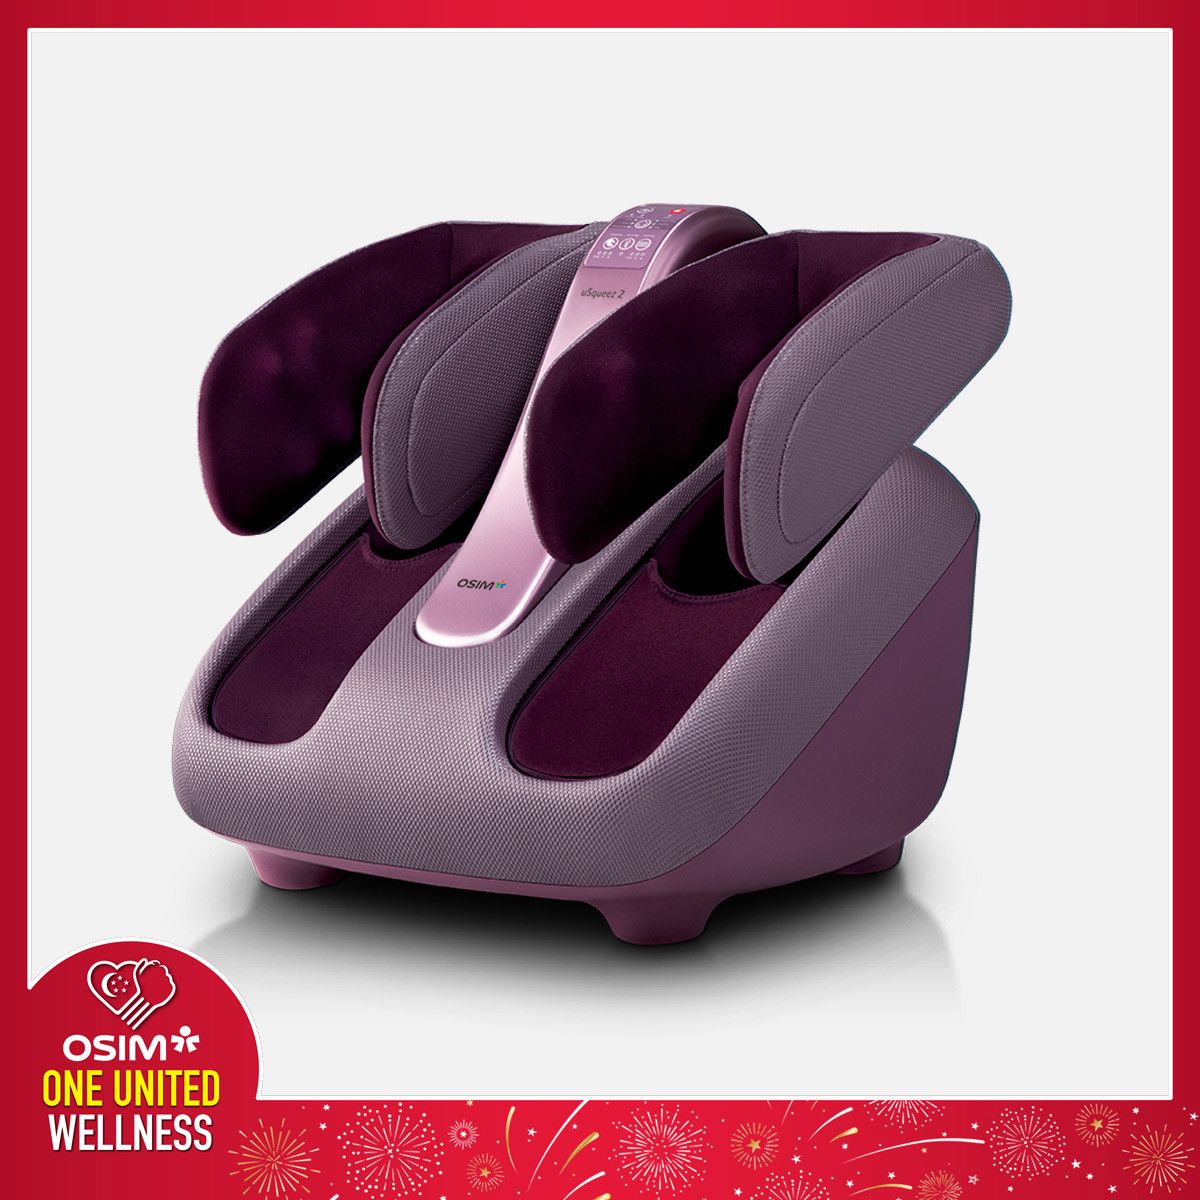 uSqueez 2 Leg Massager (Earliest Delivery: 18 Aug)